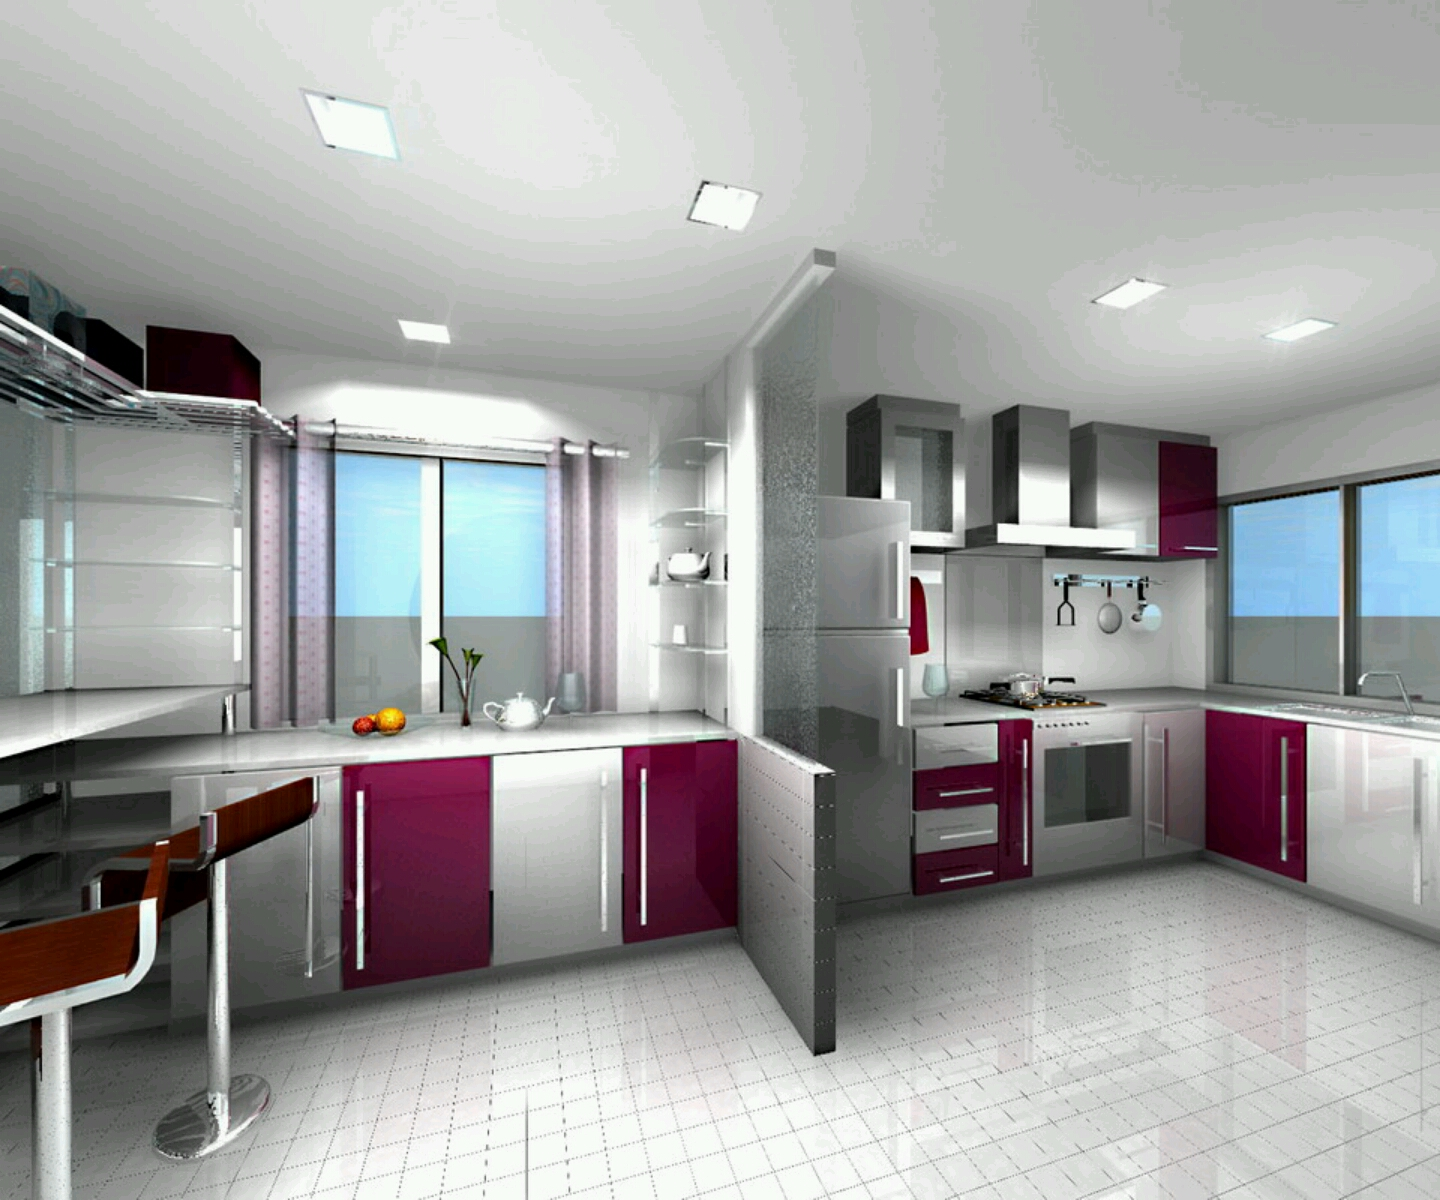 Stunning Ultra-Modern Kitchen Design Idea 1440 x 1200 · 964 kB · jpeg